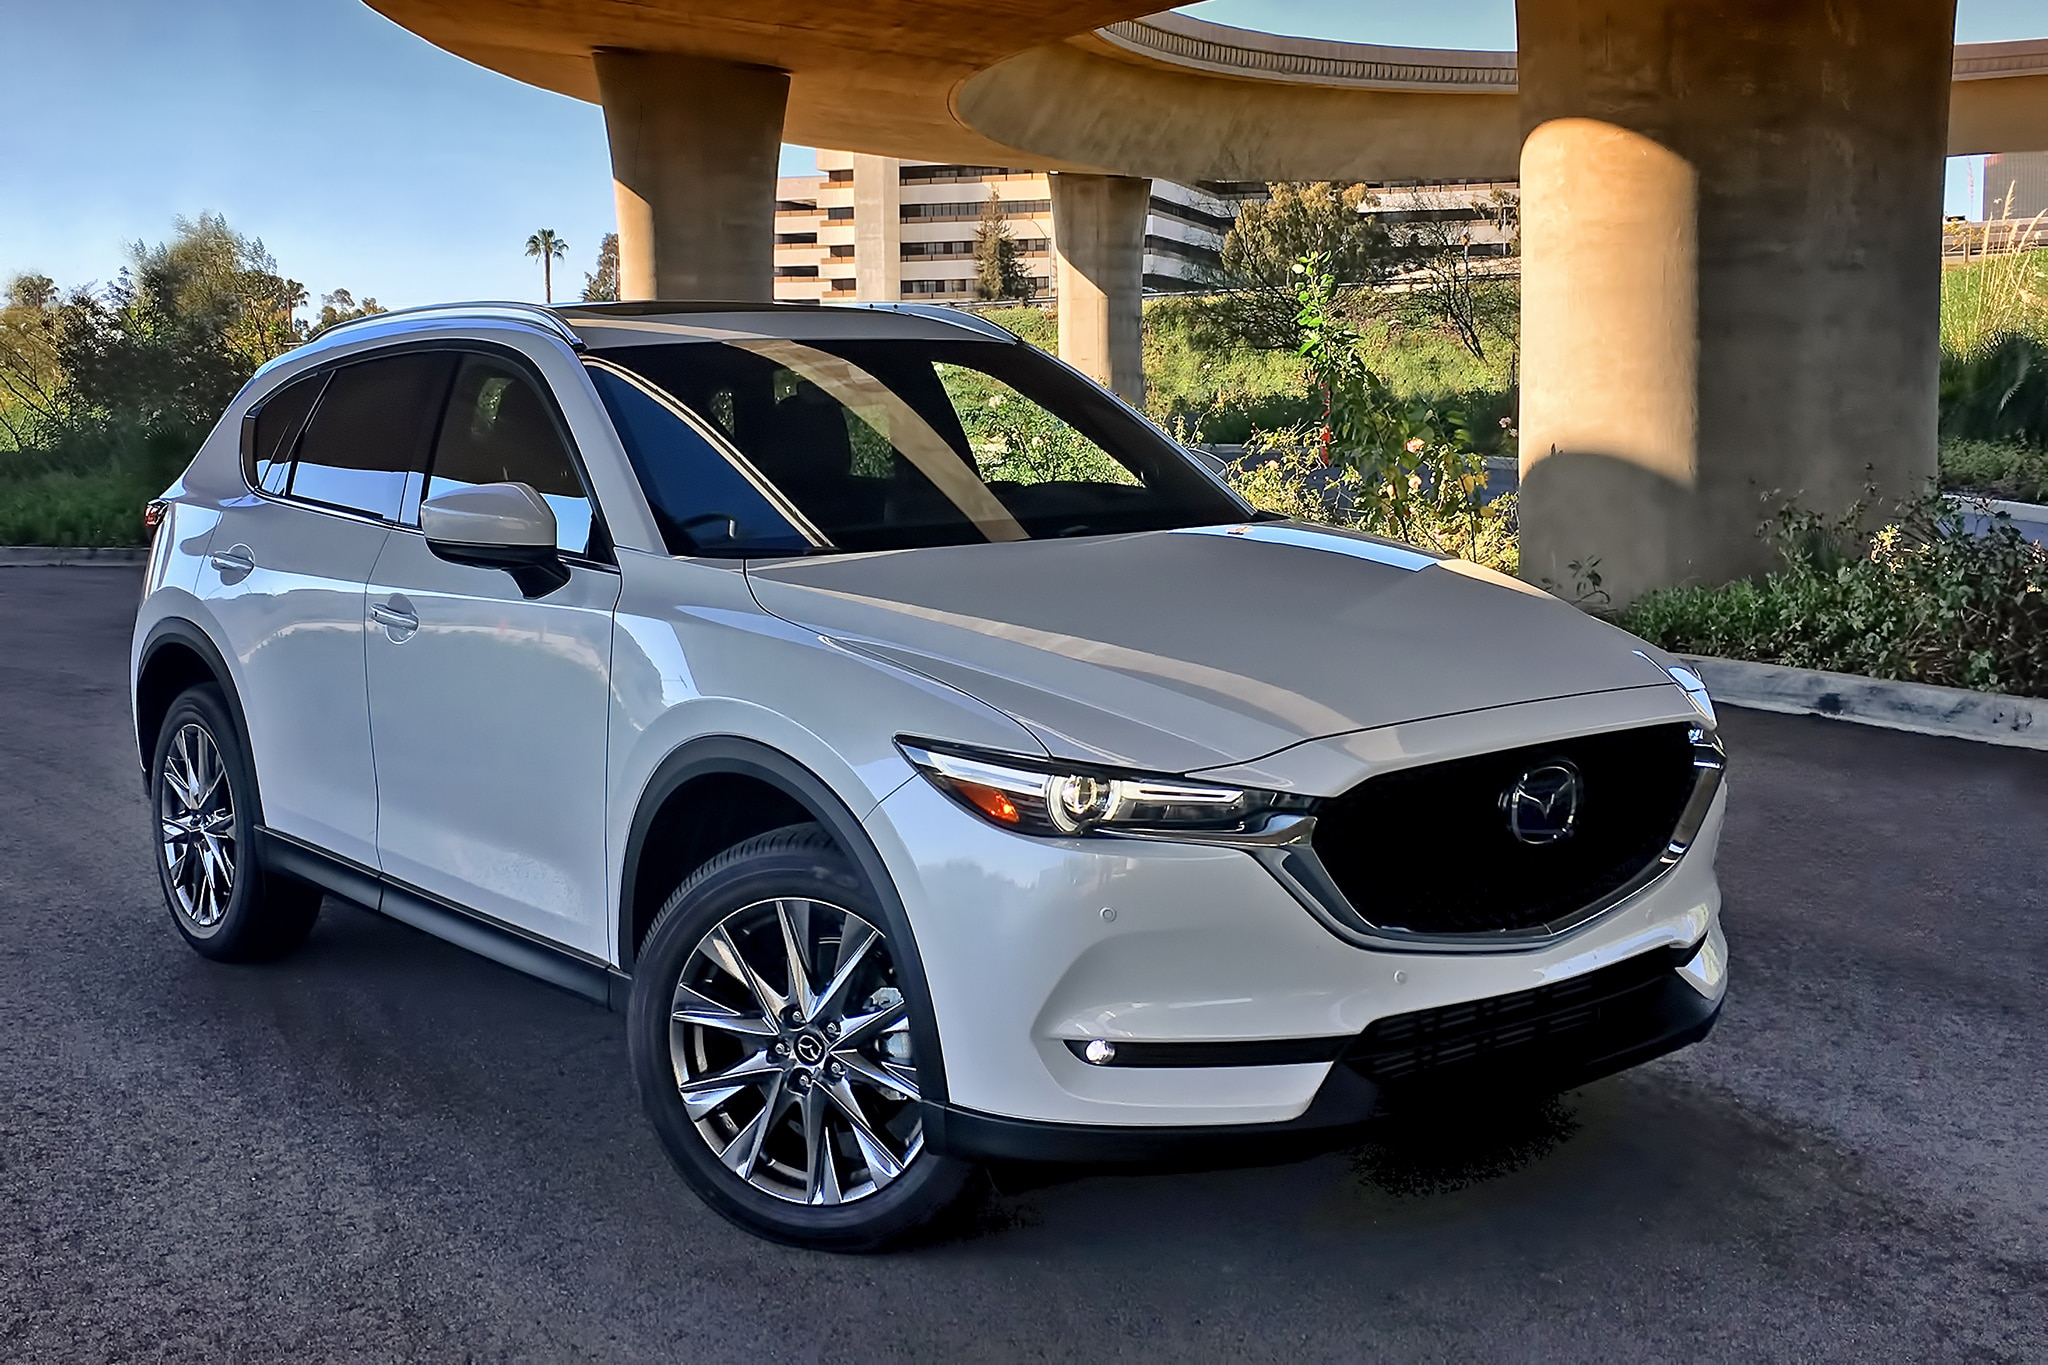 2019 mazda cx 5 turbo awd review even better under. Black Bedroom Furniture Sets. Home Design Ideas